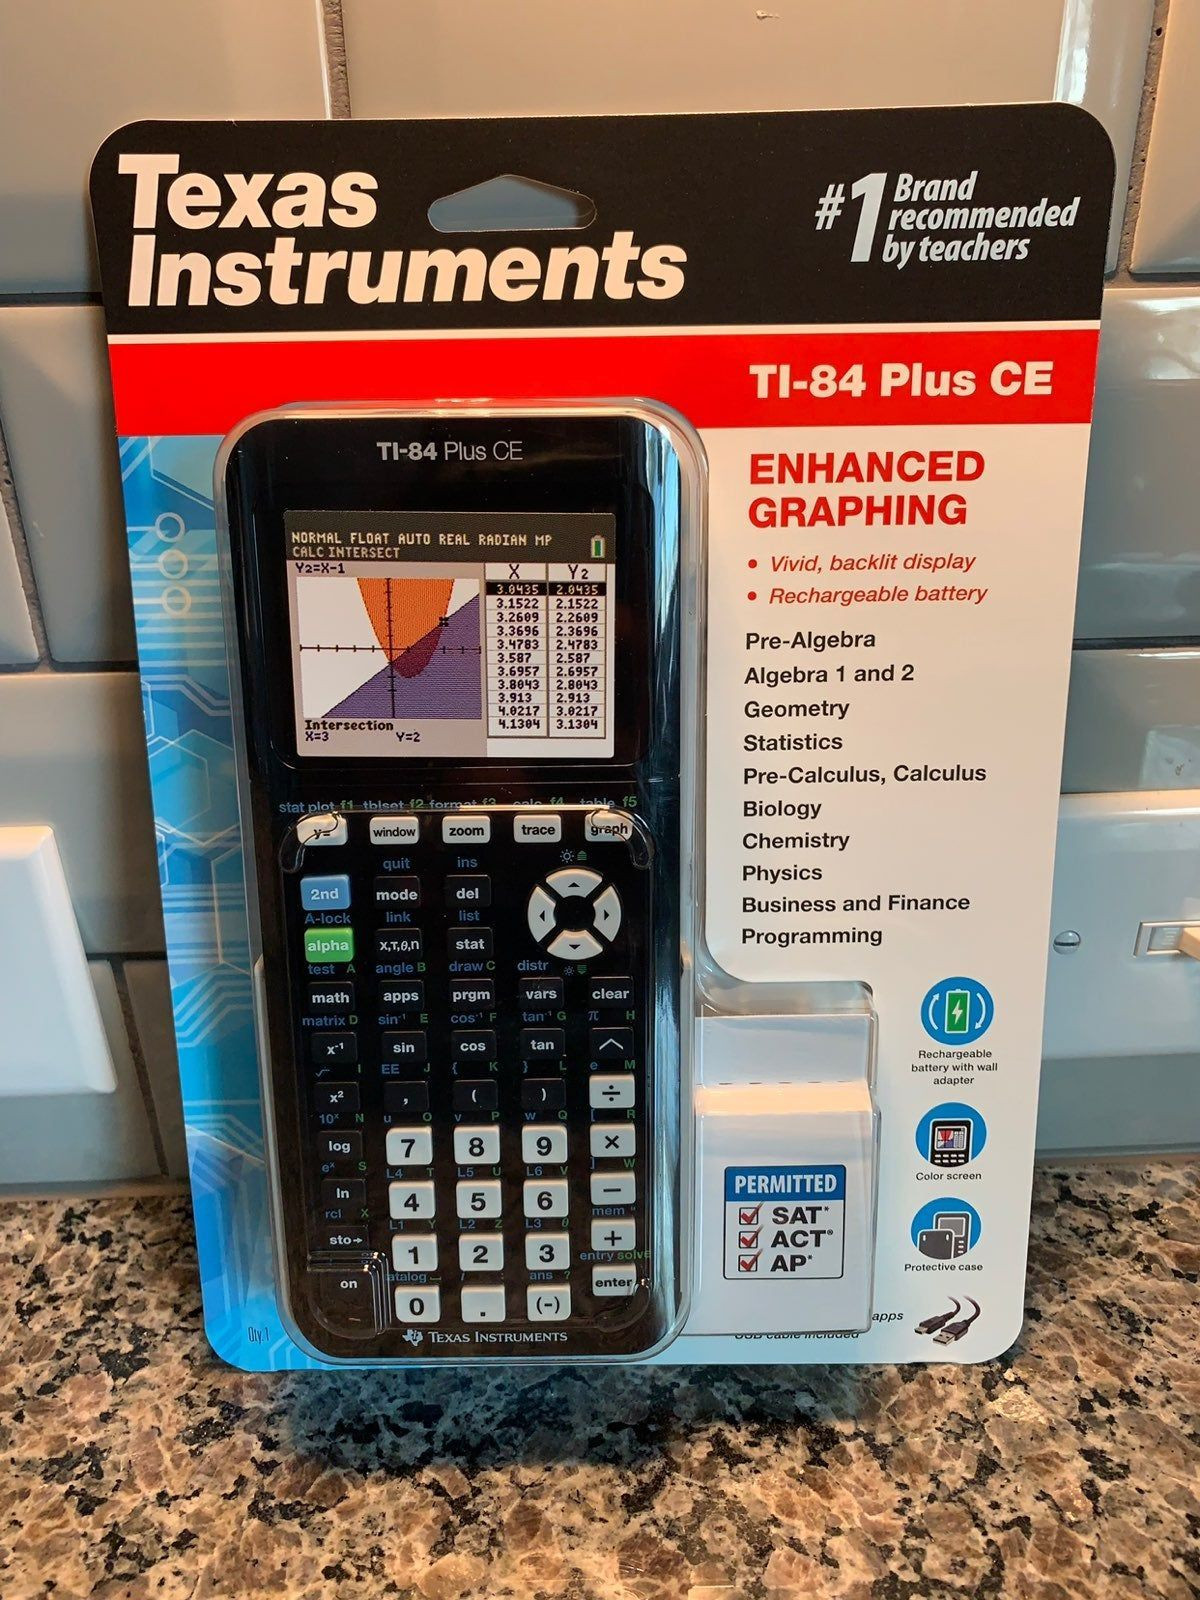 Texas Instruments TI-84 Plus CE Graphing Calculator Color Variations